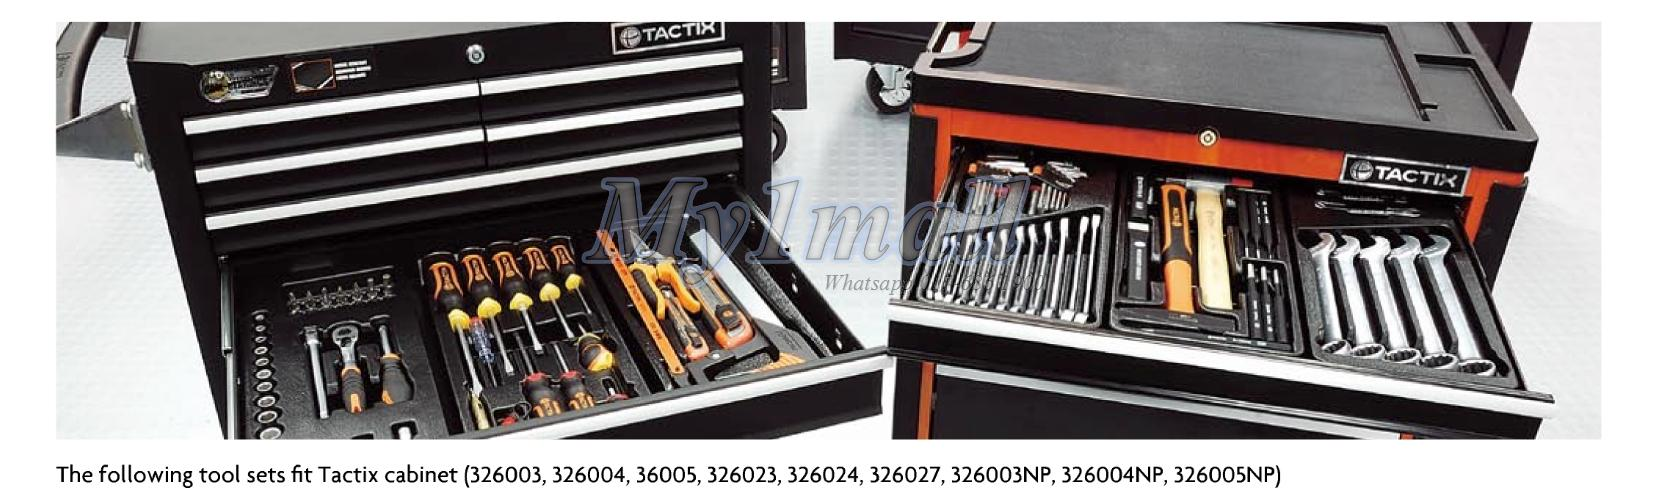 TACTIX 327512 TOOL SET 4PC